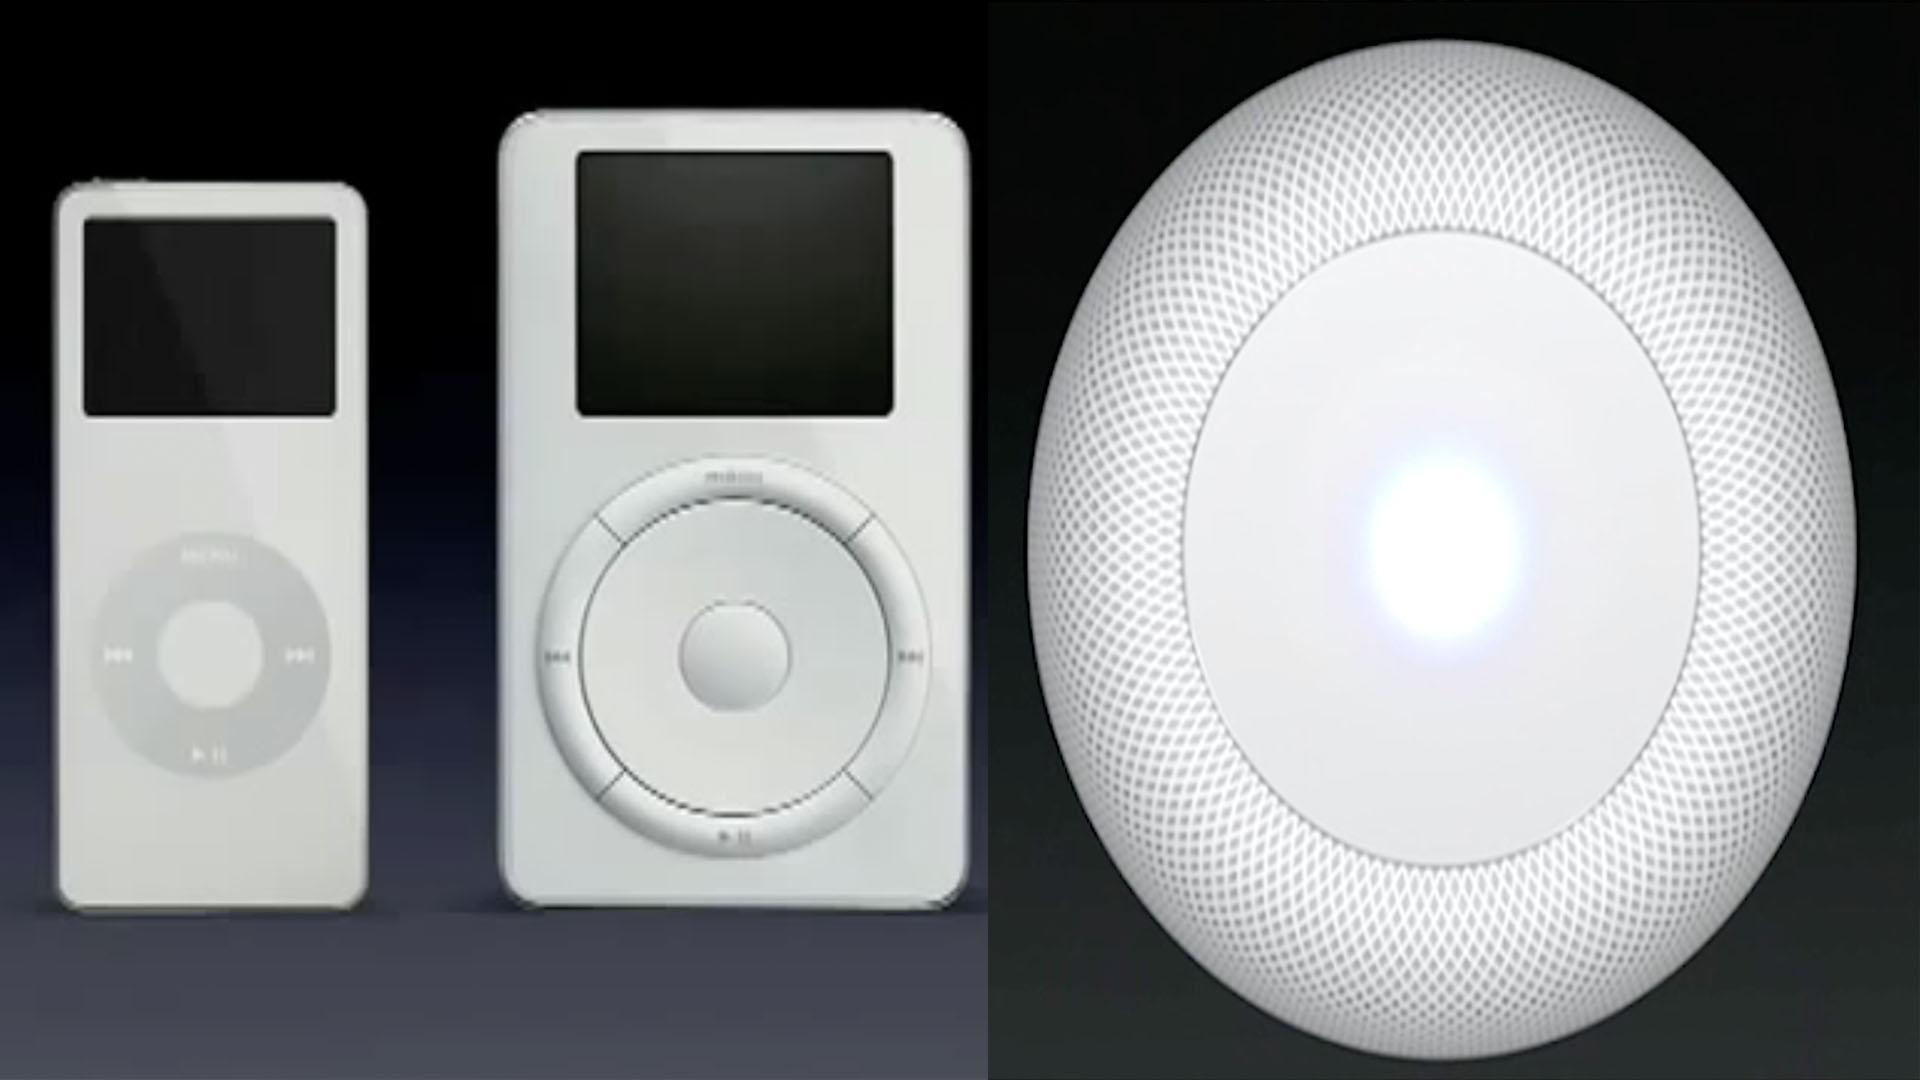 iPod to HomePod: why music is important to Apple's brand